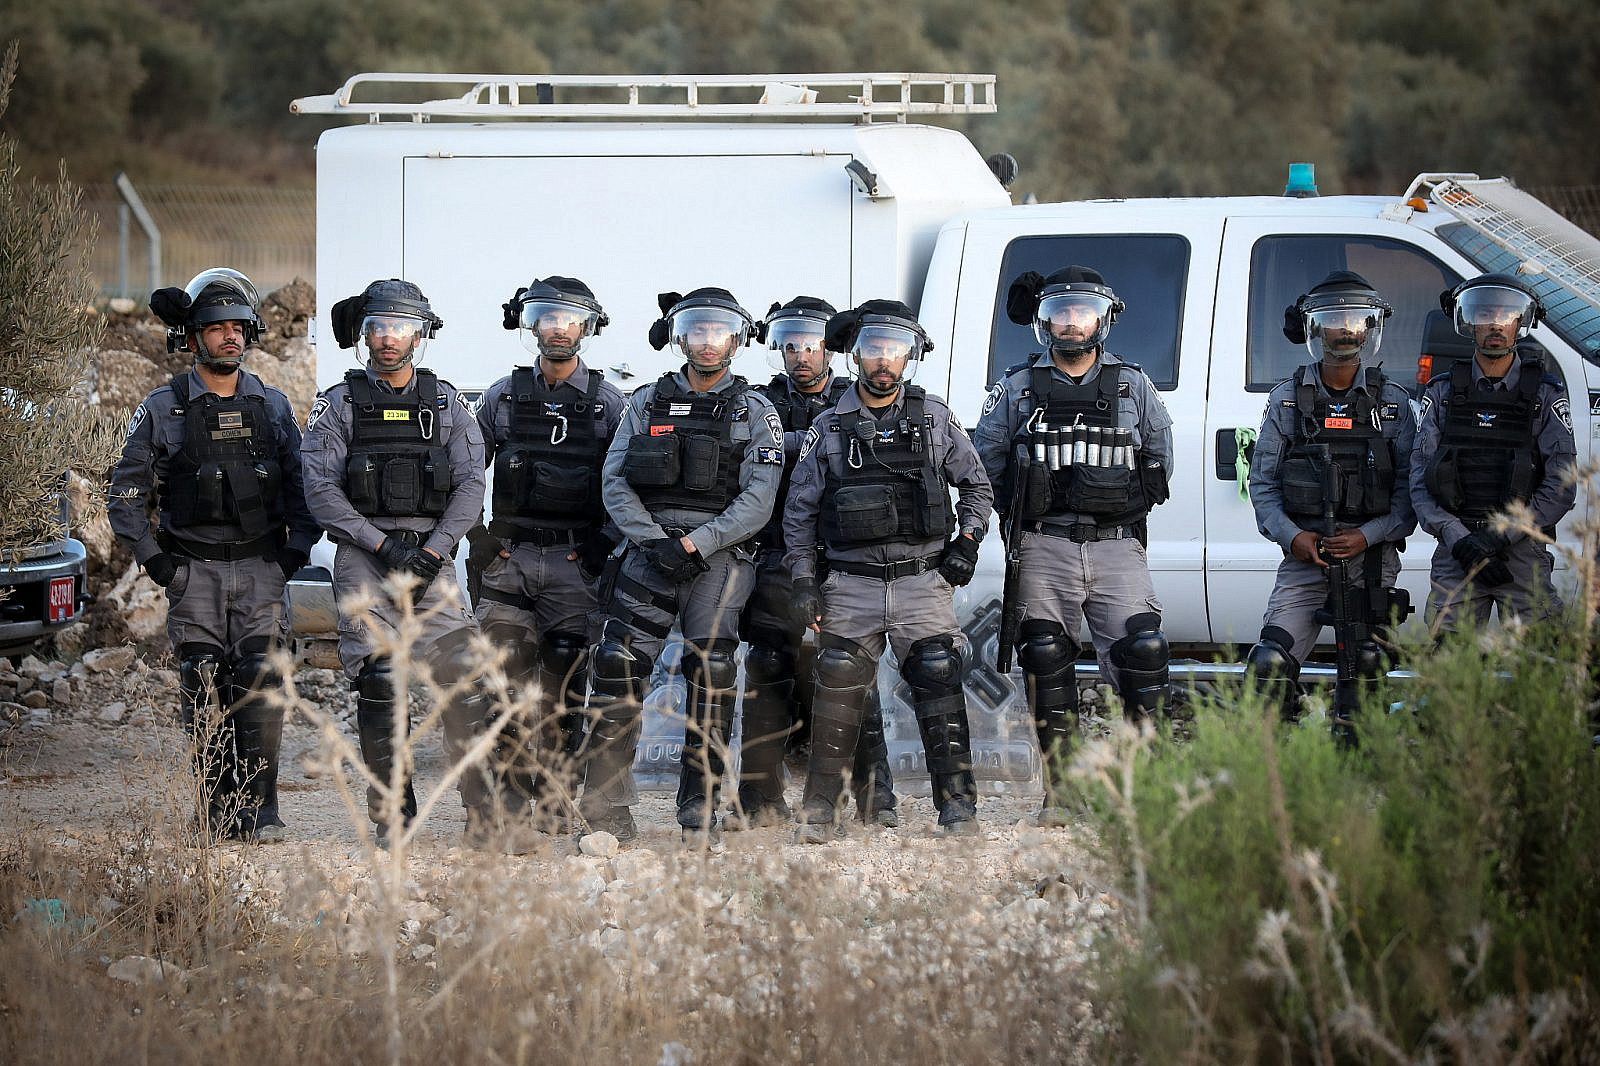 Israeli police at a protest of thousands of Palestinian citizens against violence, organized crime, and recent killings in their communities, in the Arab town of Majd al-Krum, northern Israel, October 3, 2019. (David Cohen/Flash90)